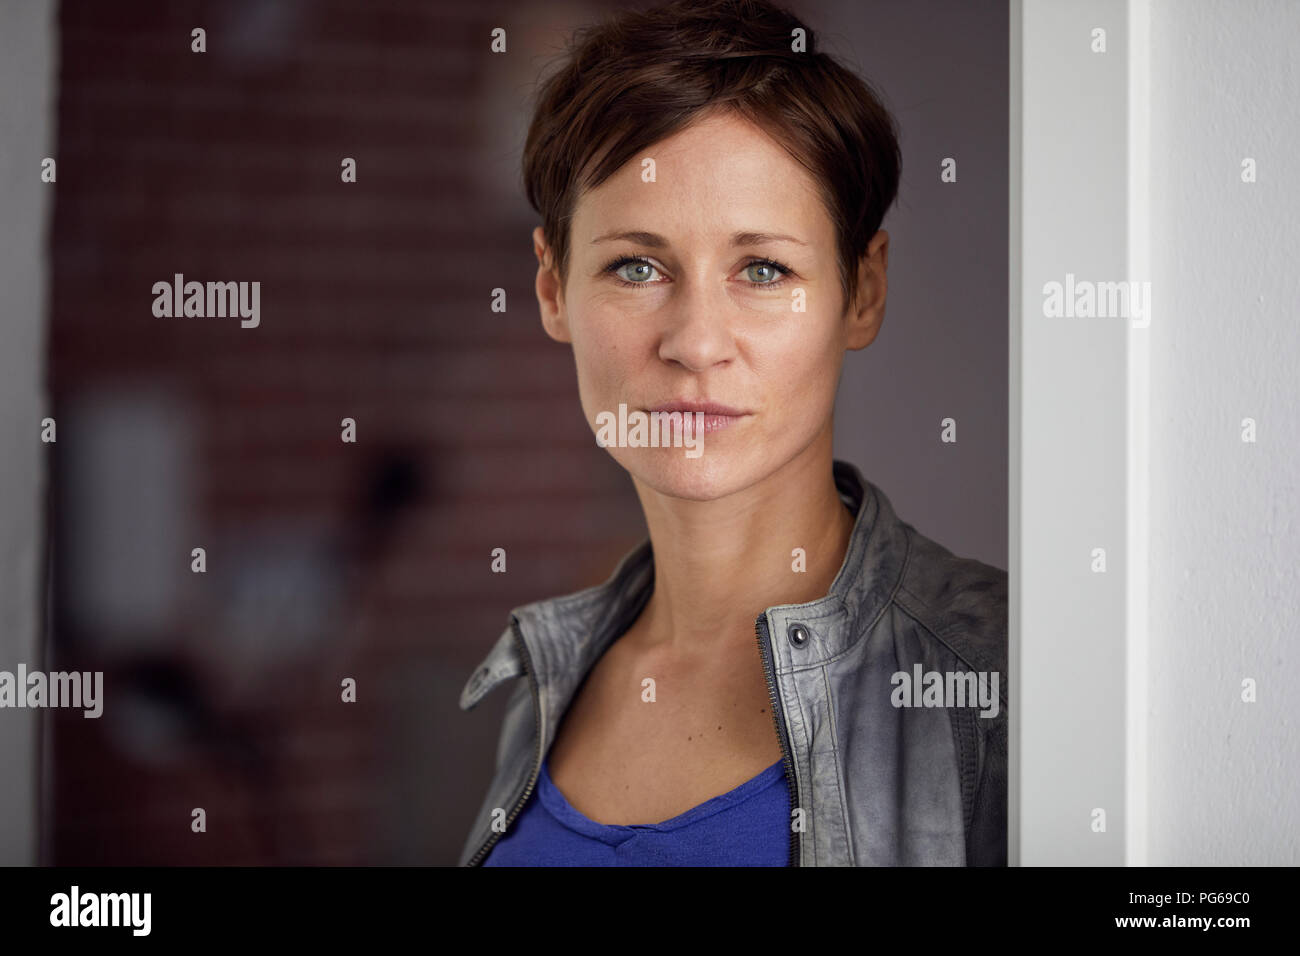 Portrait of an attractive, independent woman - Stock Image